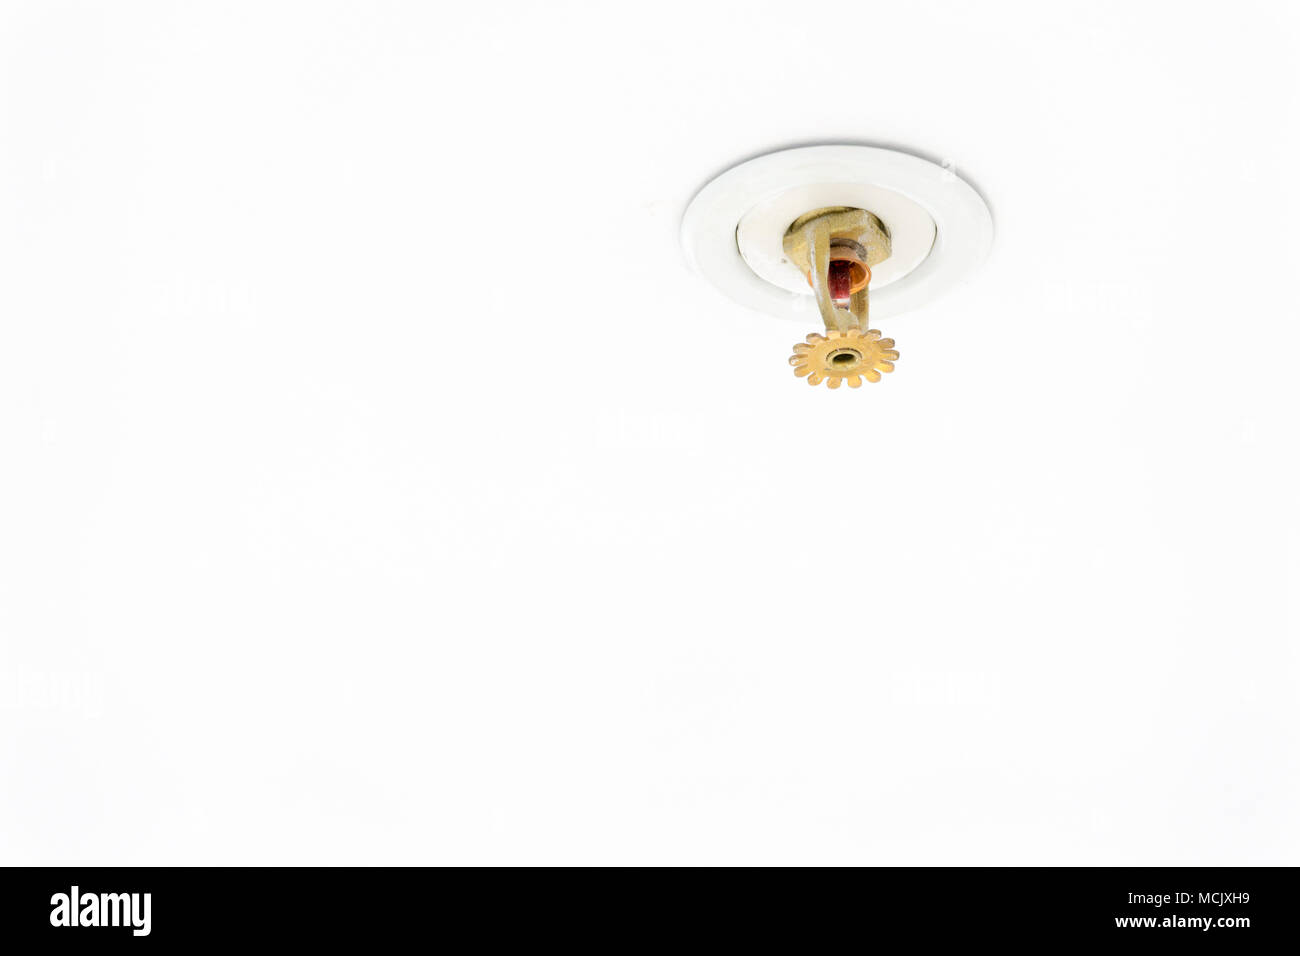 Close up image of fire sprinkler on white. Fire sprinklers are part of an integrated water piping system designed for life and fire safety. Automatic - Stock Image